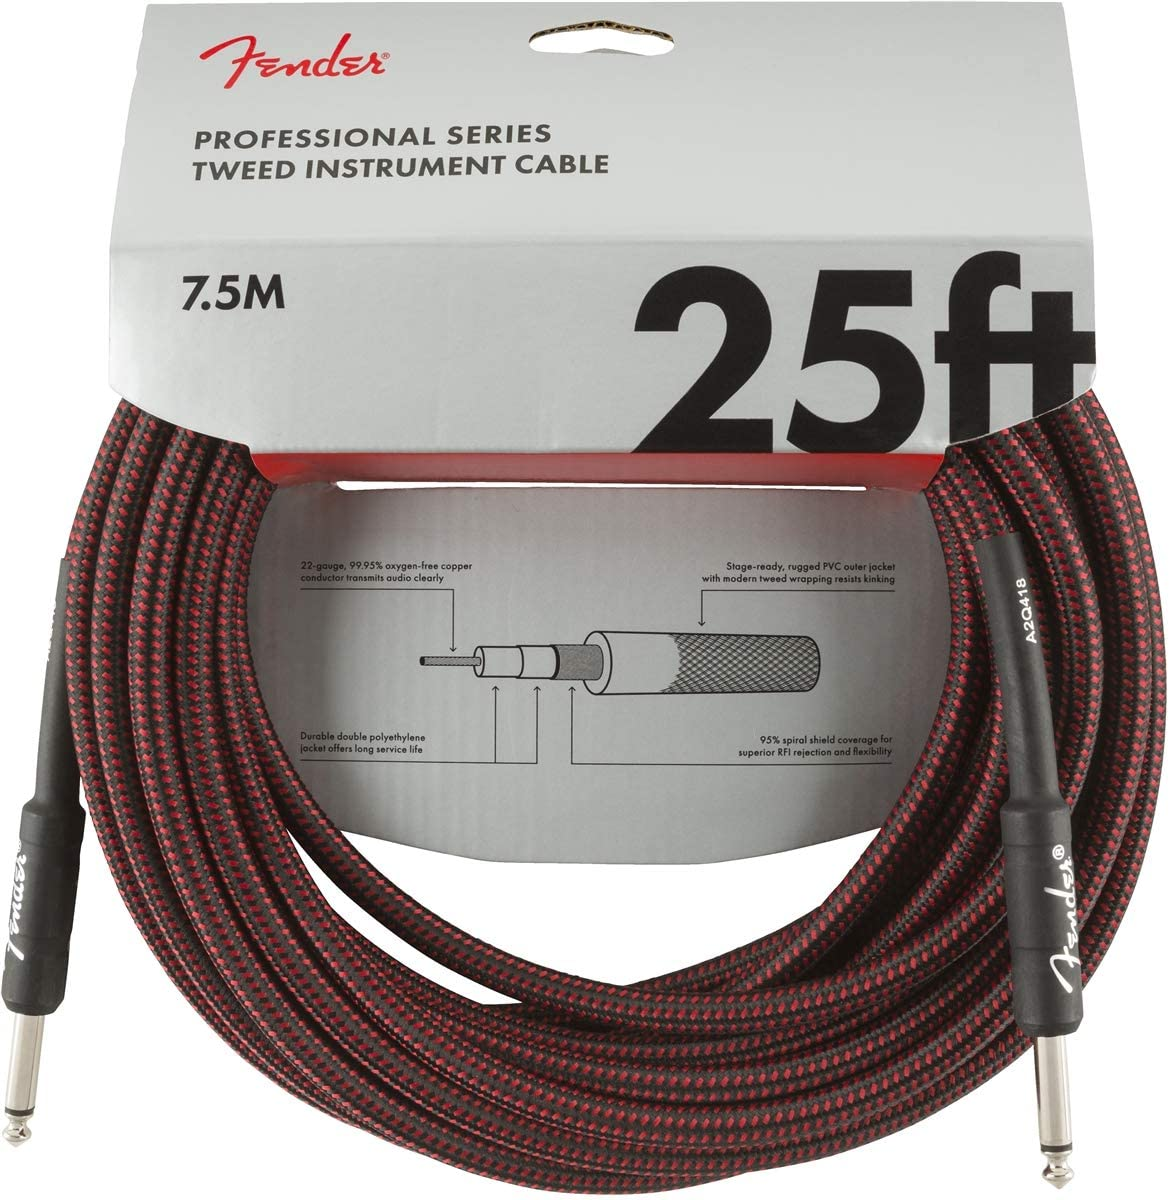 Red Tweed Fender Professional Series Cable